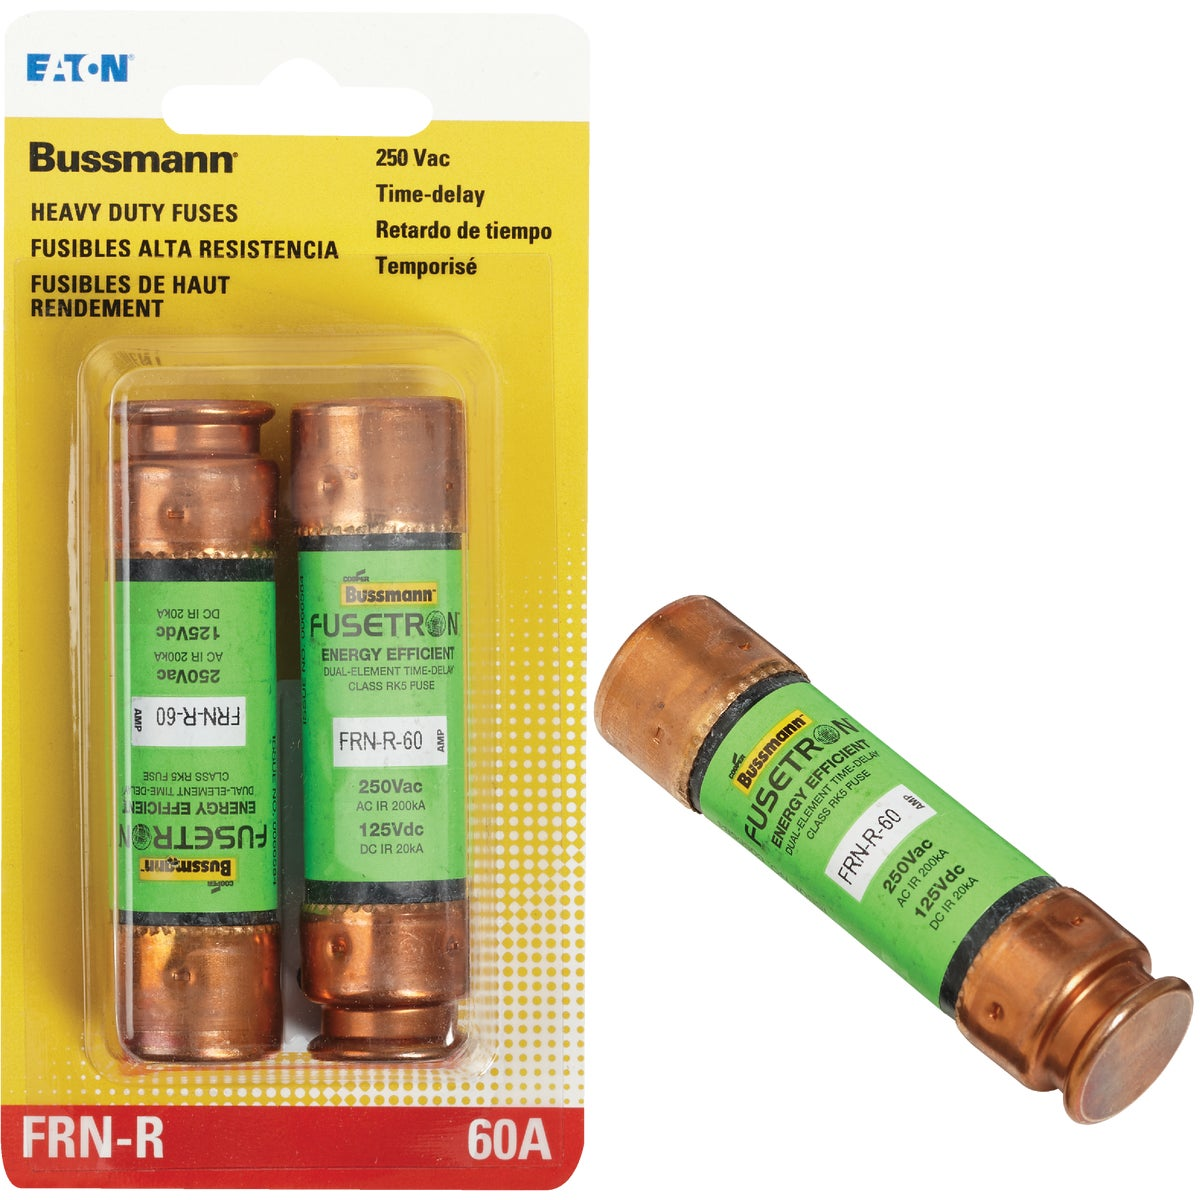 60A CARTRIDGE FUSE - BP/FRN-R-60 by Bussmann Cooper